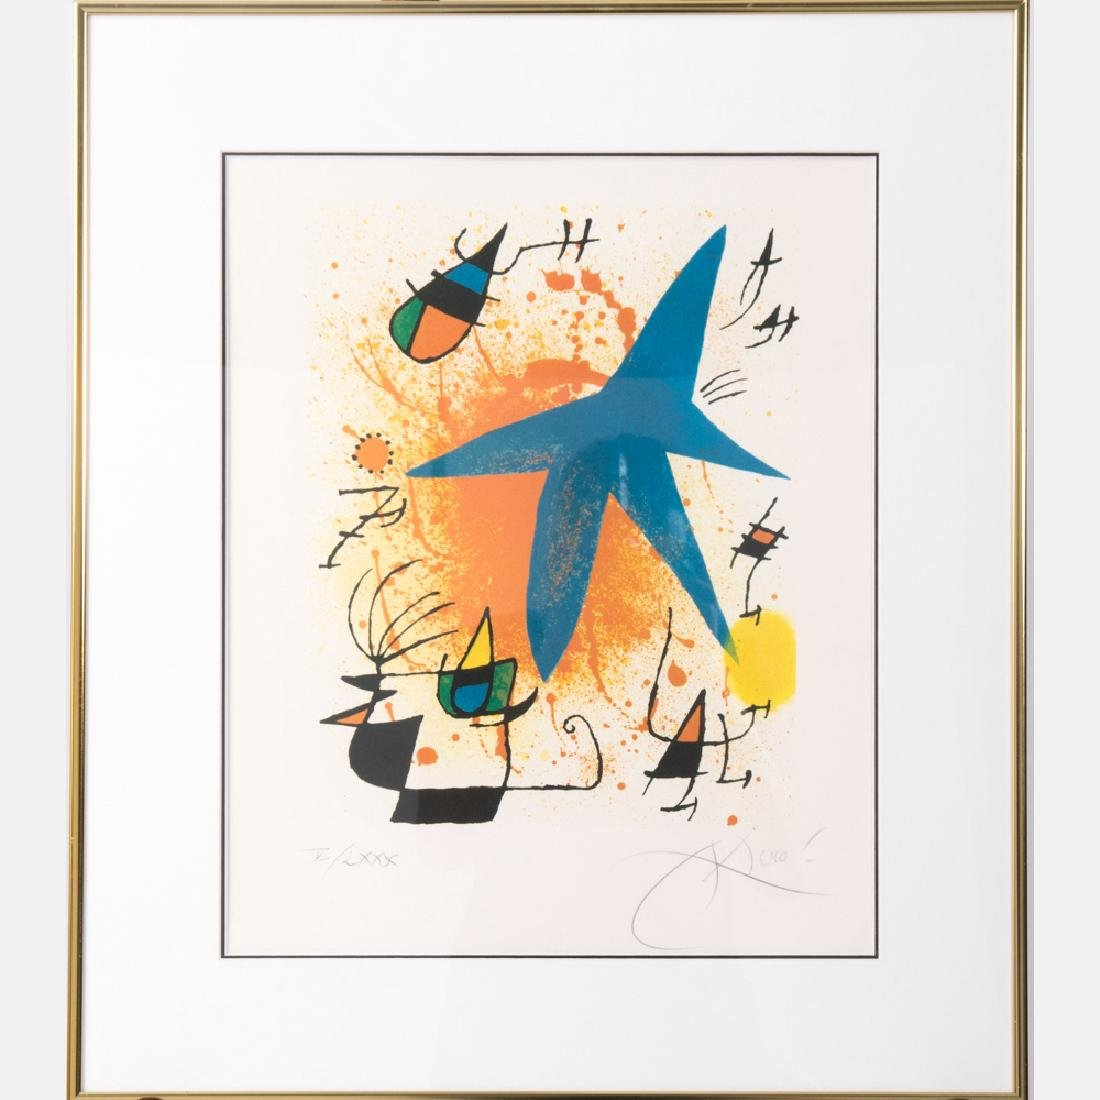 Joan Miro (1893-1983) Star, 1974, Lithograph,